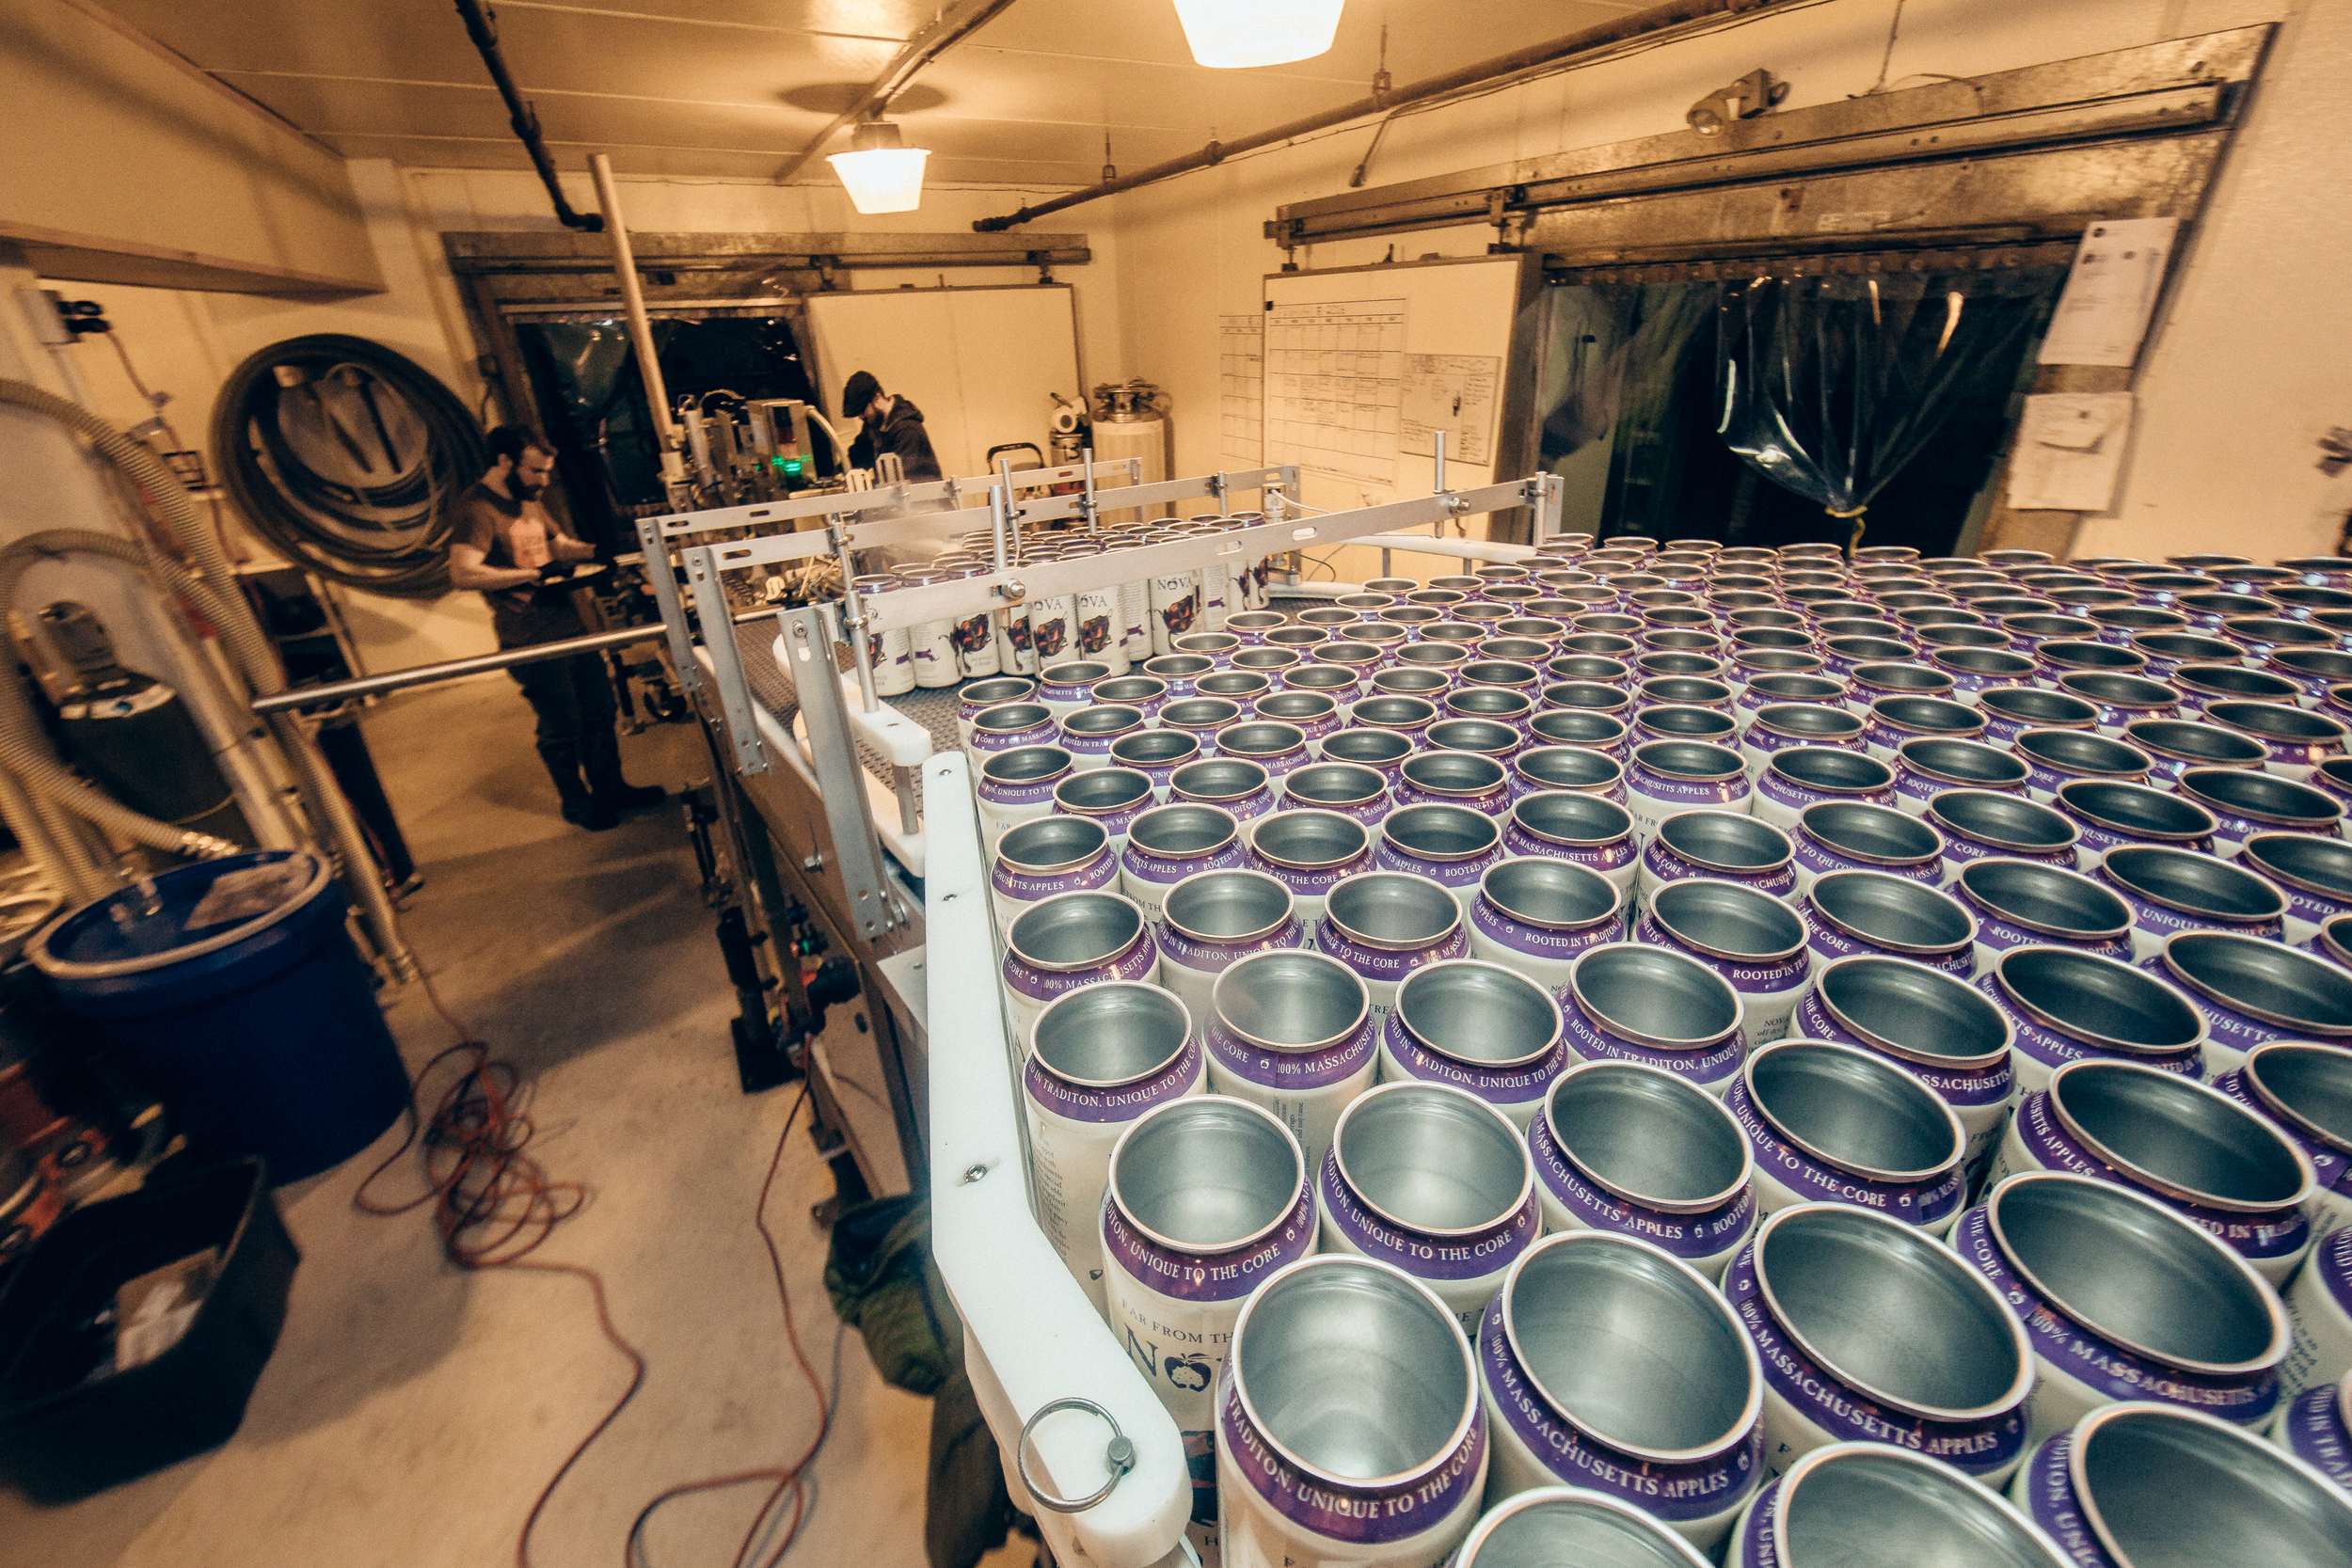 Thousands of empty cans get ready to be filled